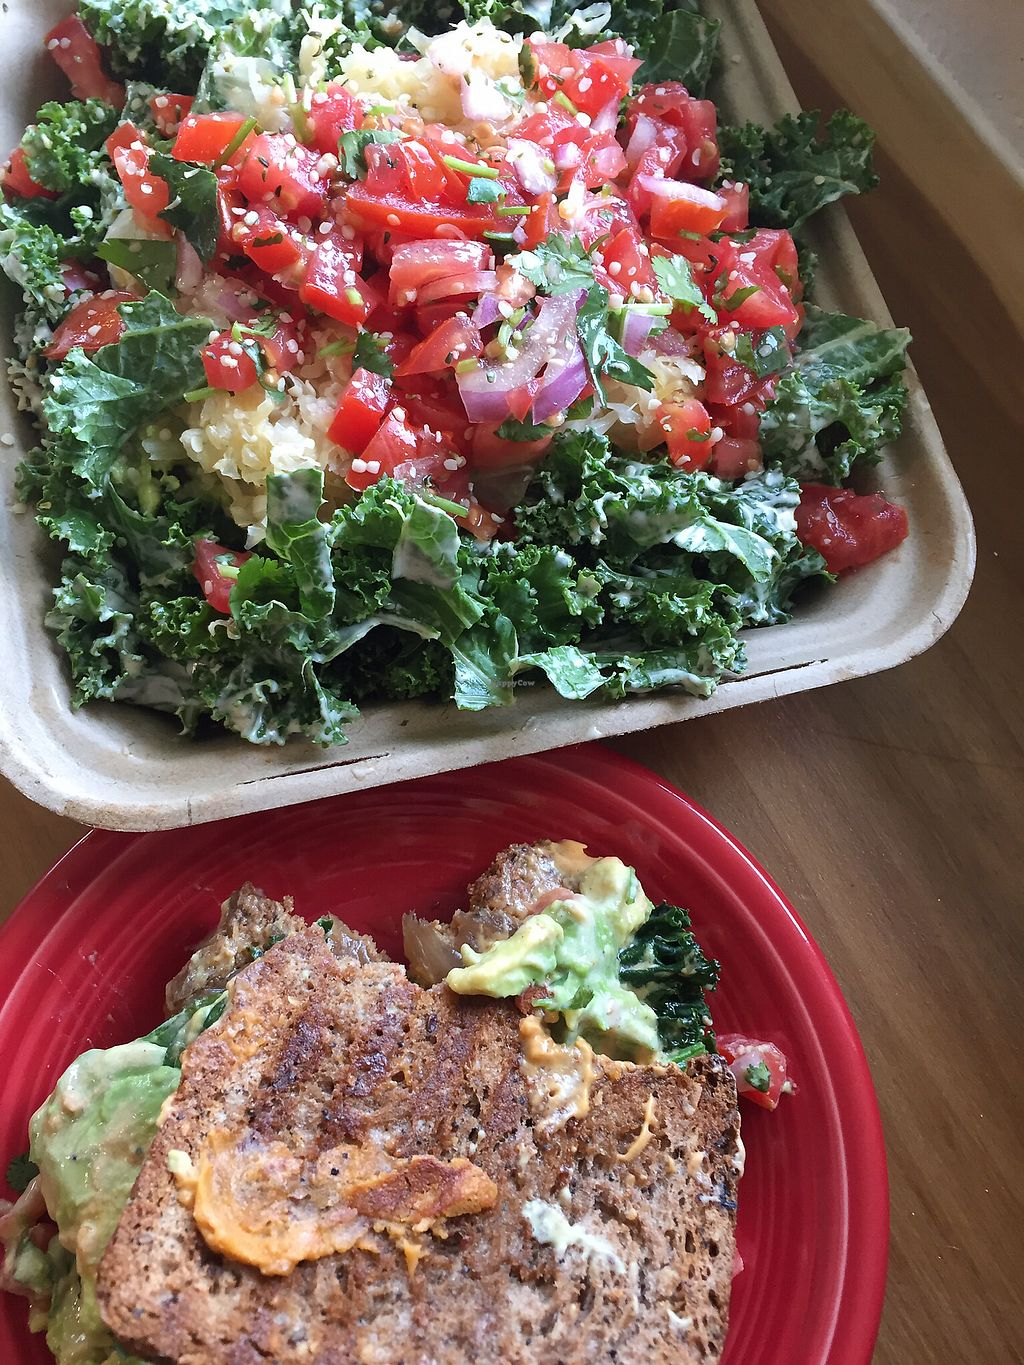 "Photo of La Vida Veggie  by <a href=""/members/profile/TiffanyJanay"">TiffanyJanay</a> <br/>avocado melt and a kale salad. my favs! <br/> June 26, 2017  - <a href='/contact/abuse/image/58366/273553'>Report</a>"